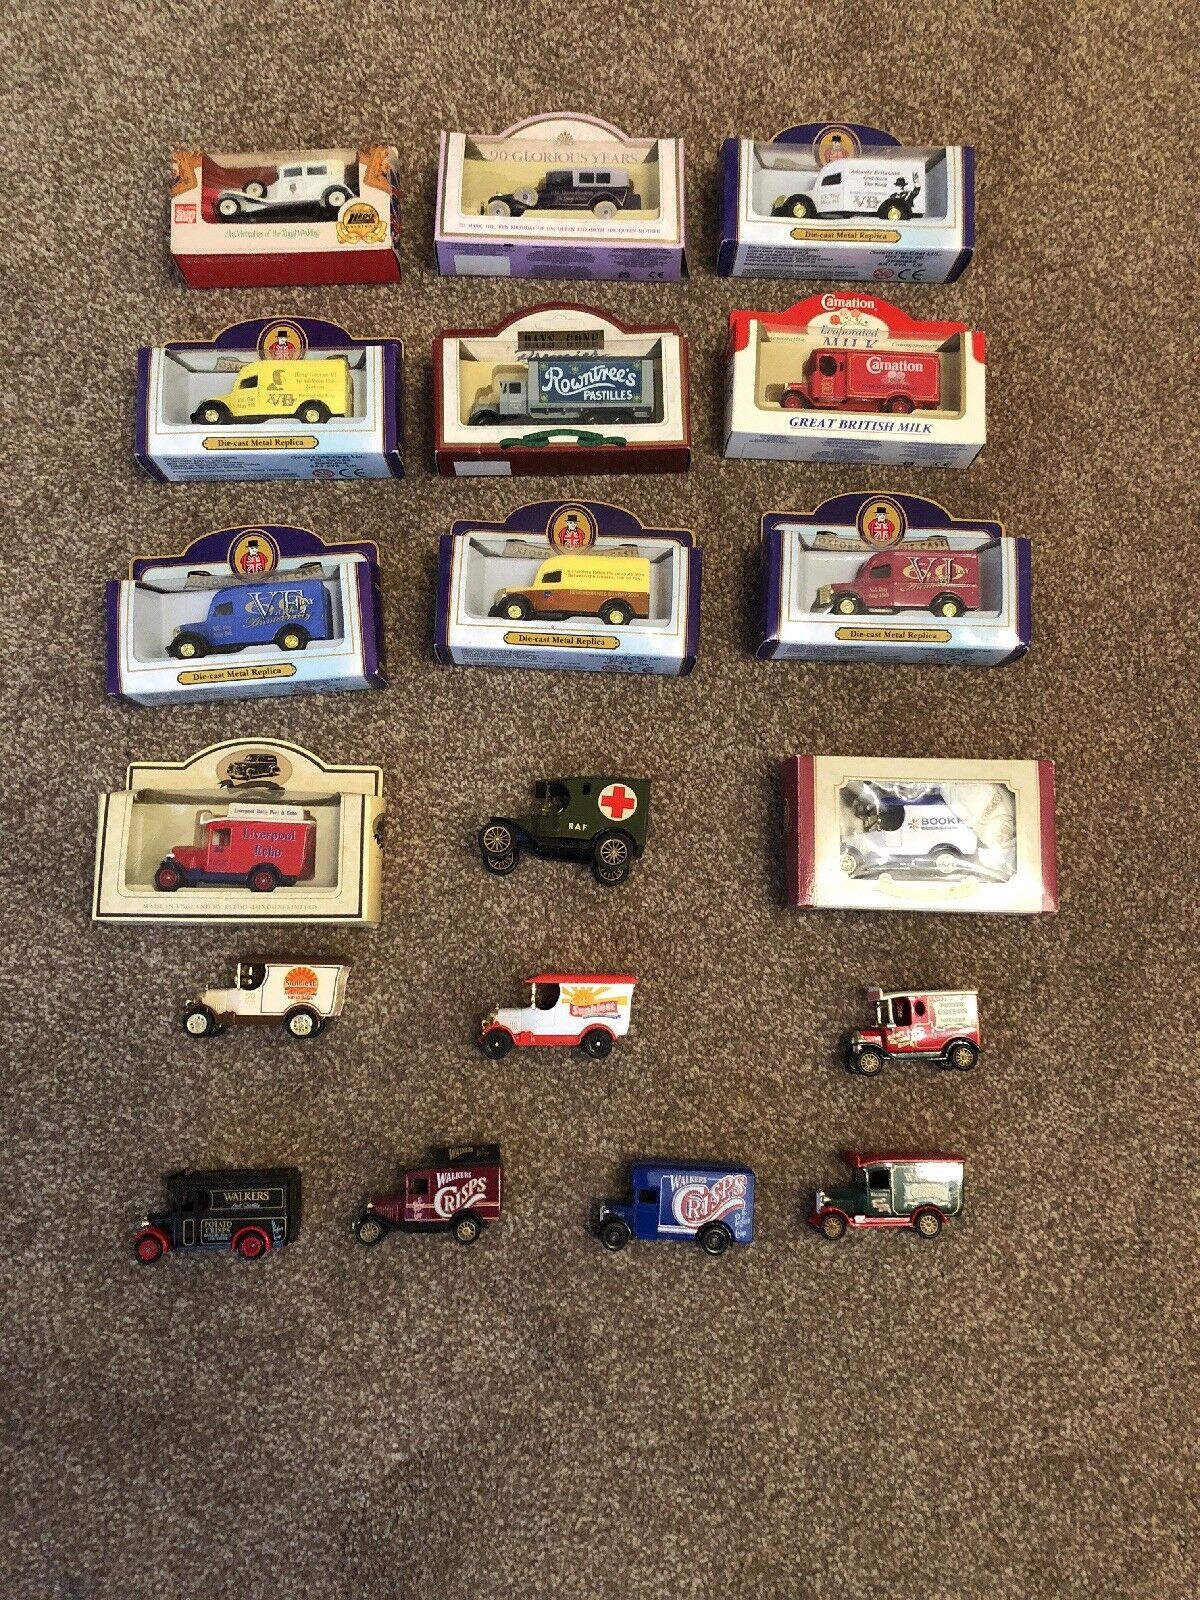 19 Model Die Cast Cars